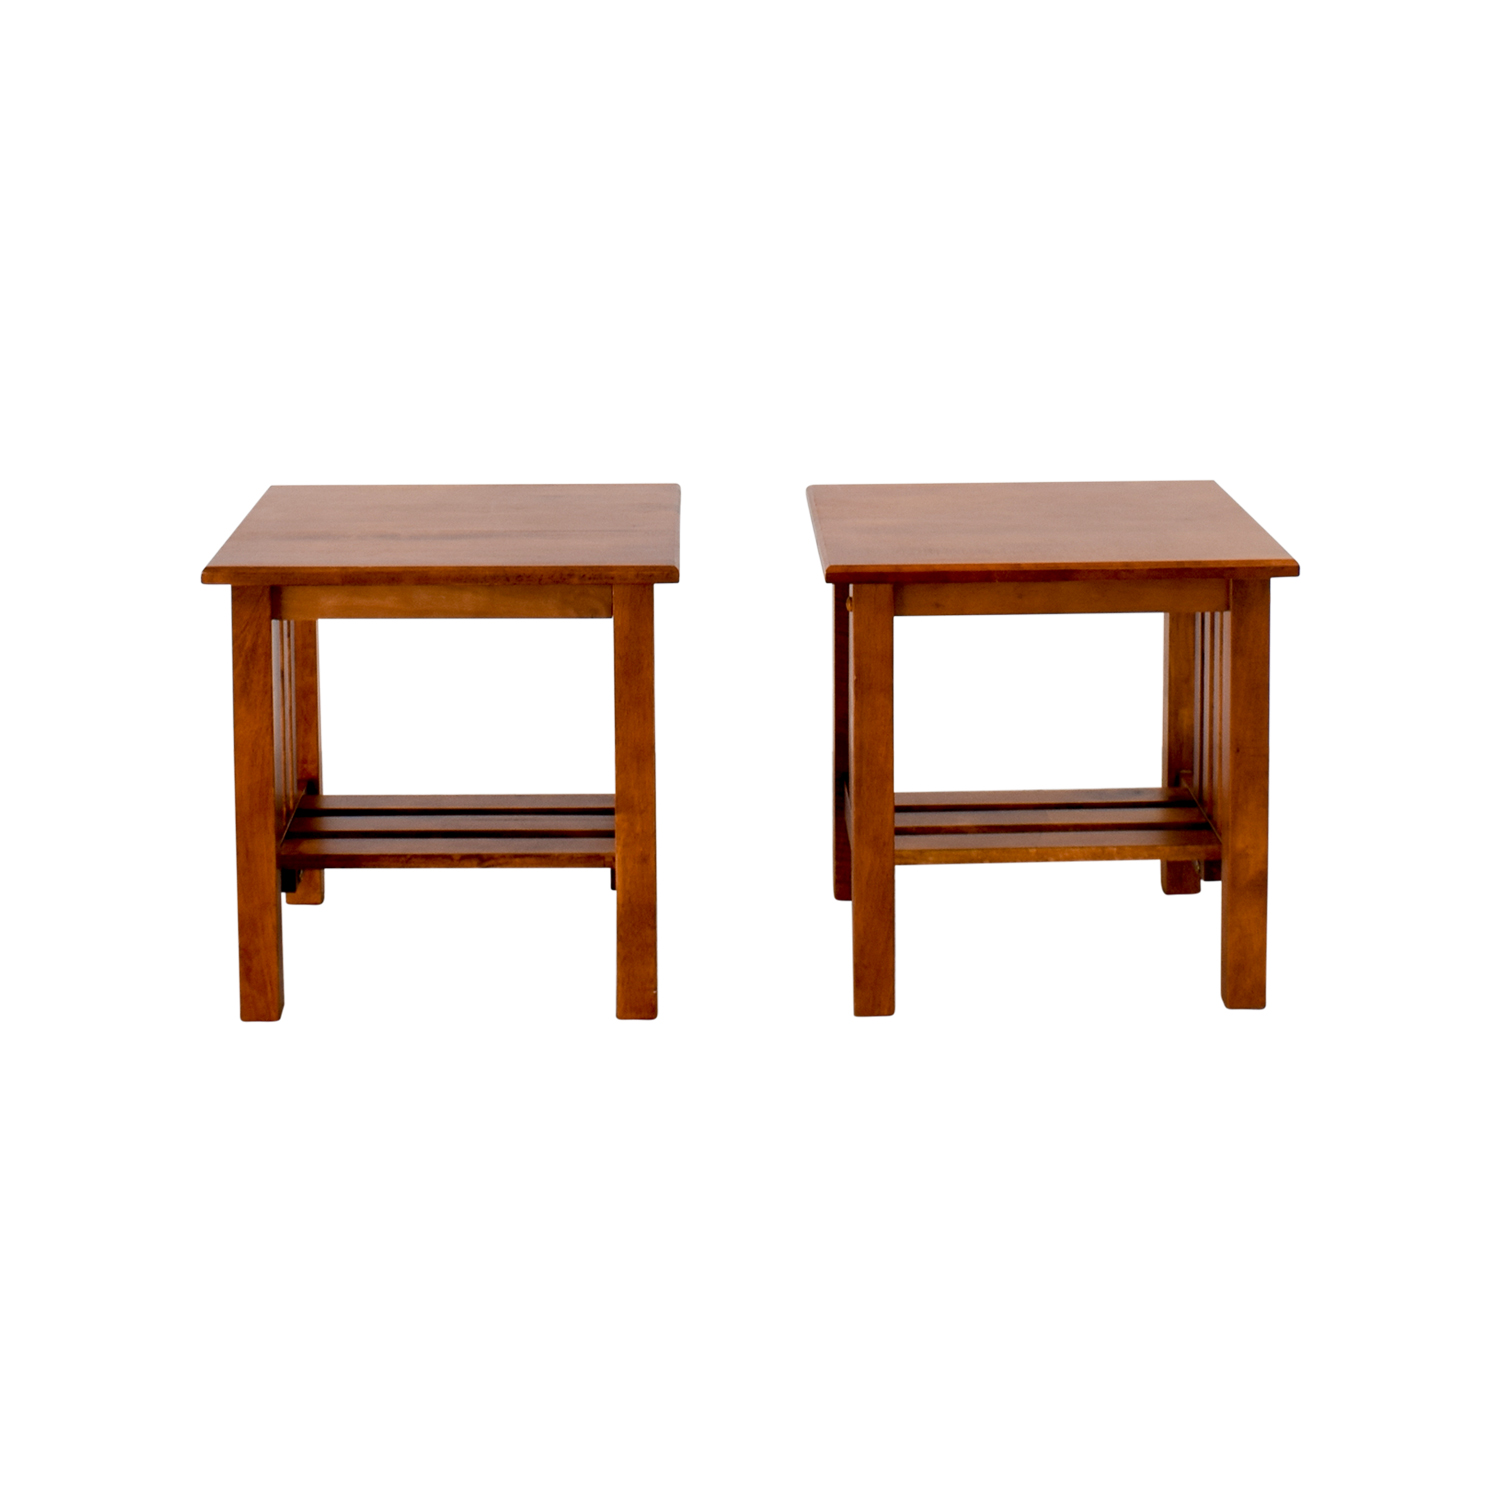 OFF Craftsman Style Wood End Tables Tables